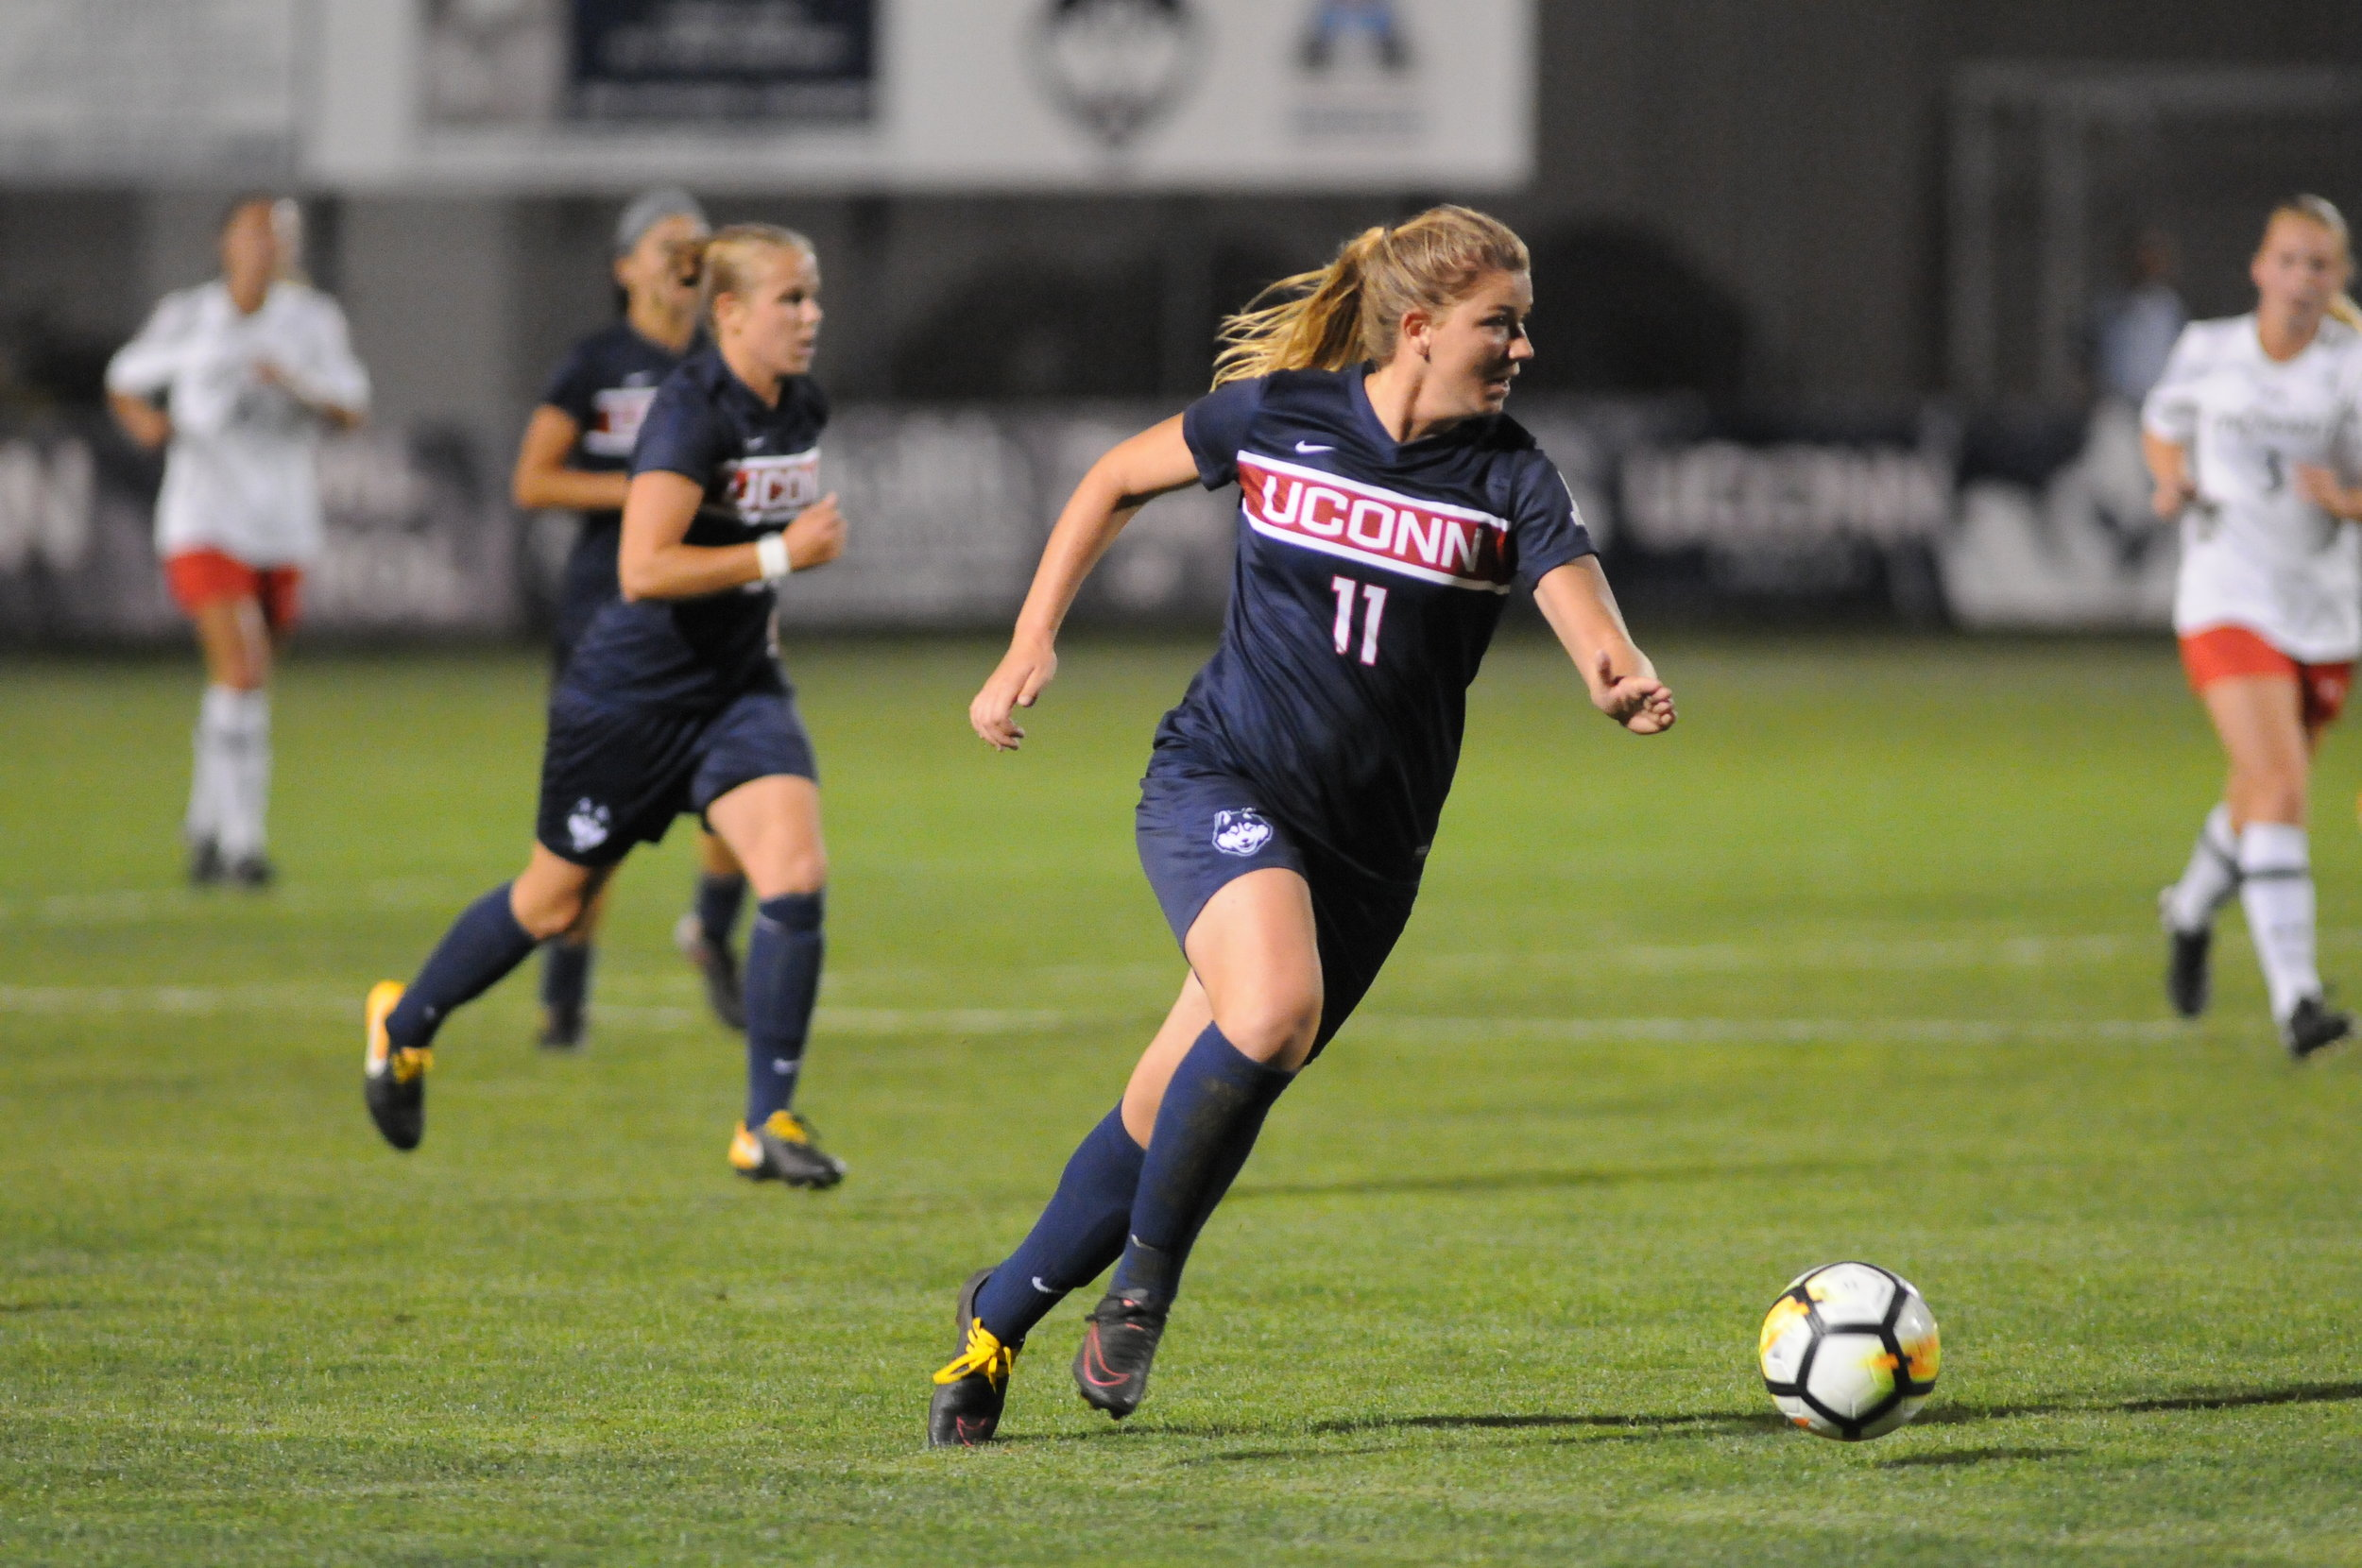 Kim Urbanek (11) charges down the field in the UConn Women's Soccer game against Providence on Sept 28, 2017. (Mark Wezenski/The Daily Campus)